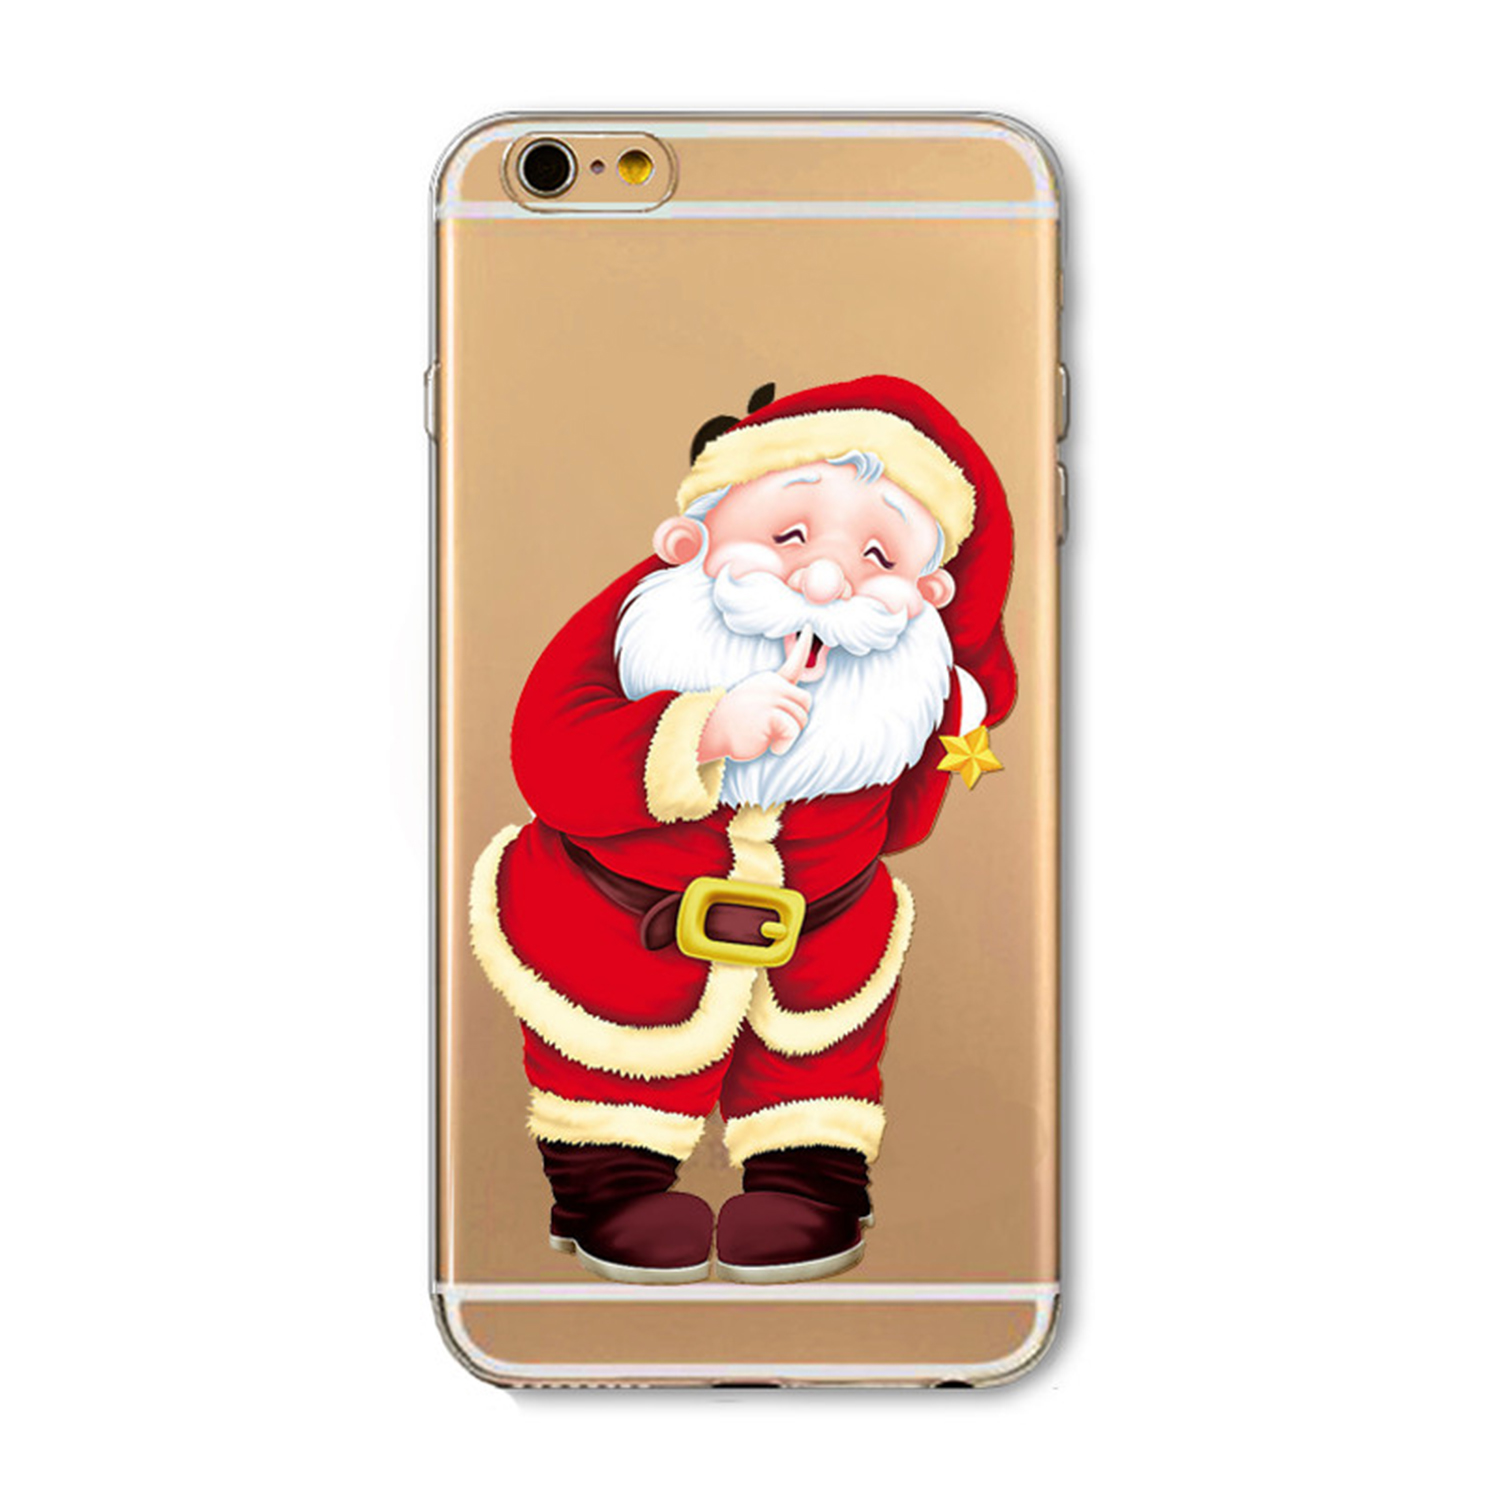 Kritzel Case für iPhone 6 / 6s - X-Mas #3